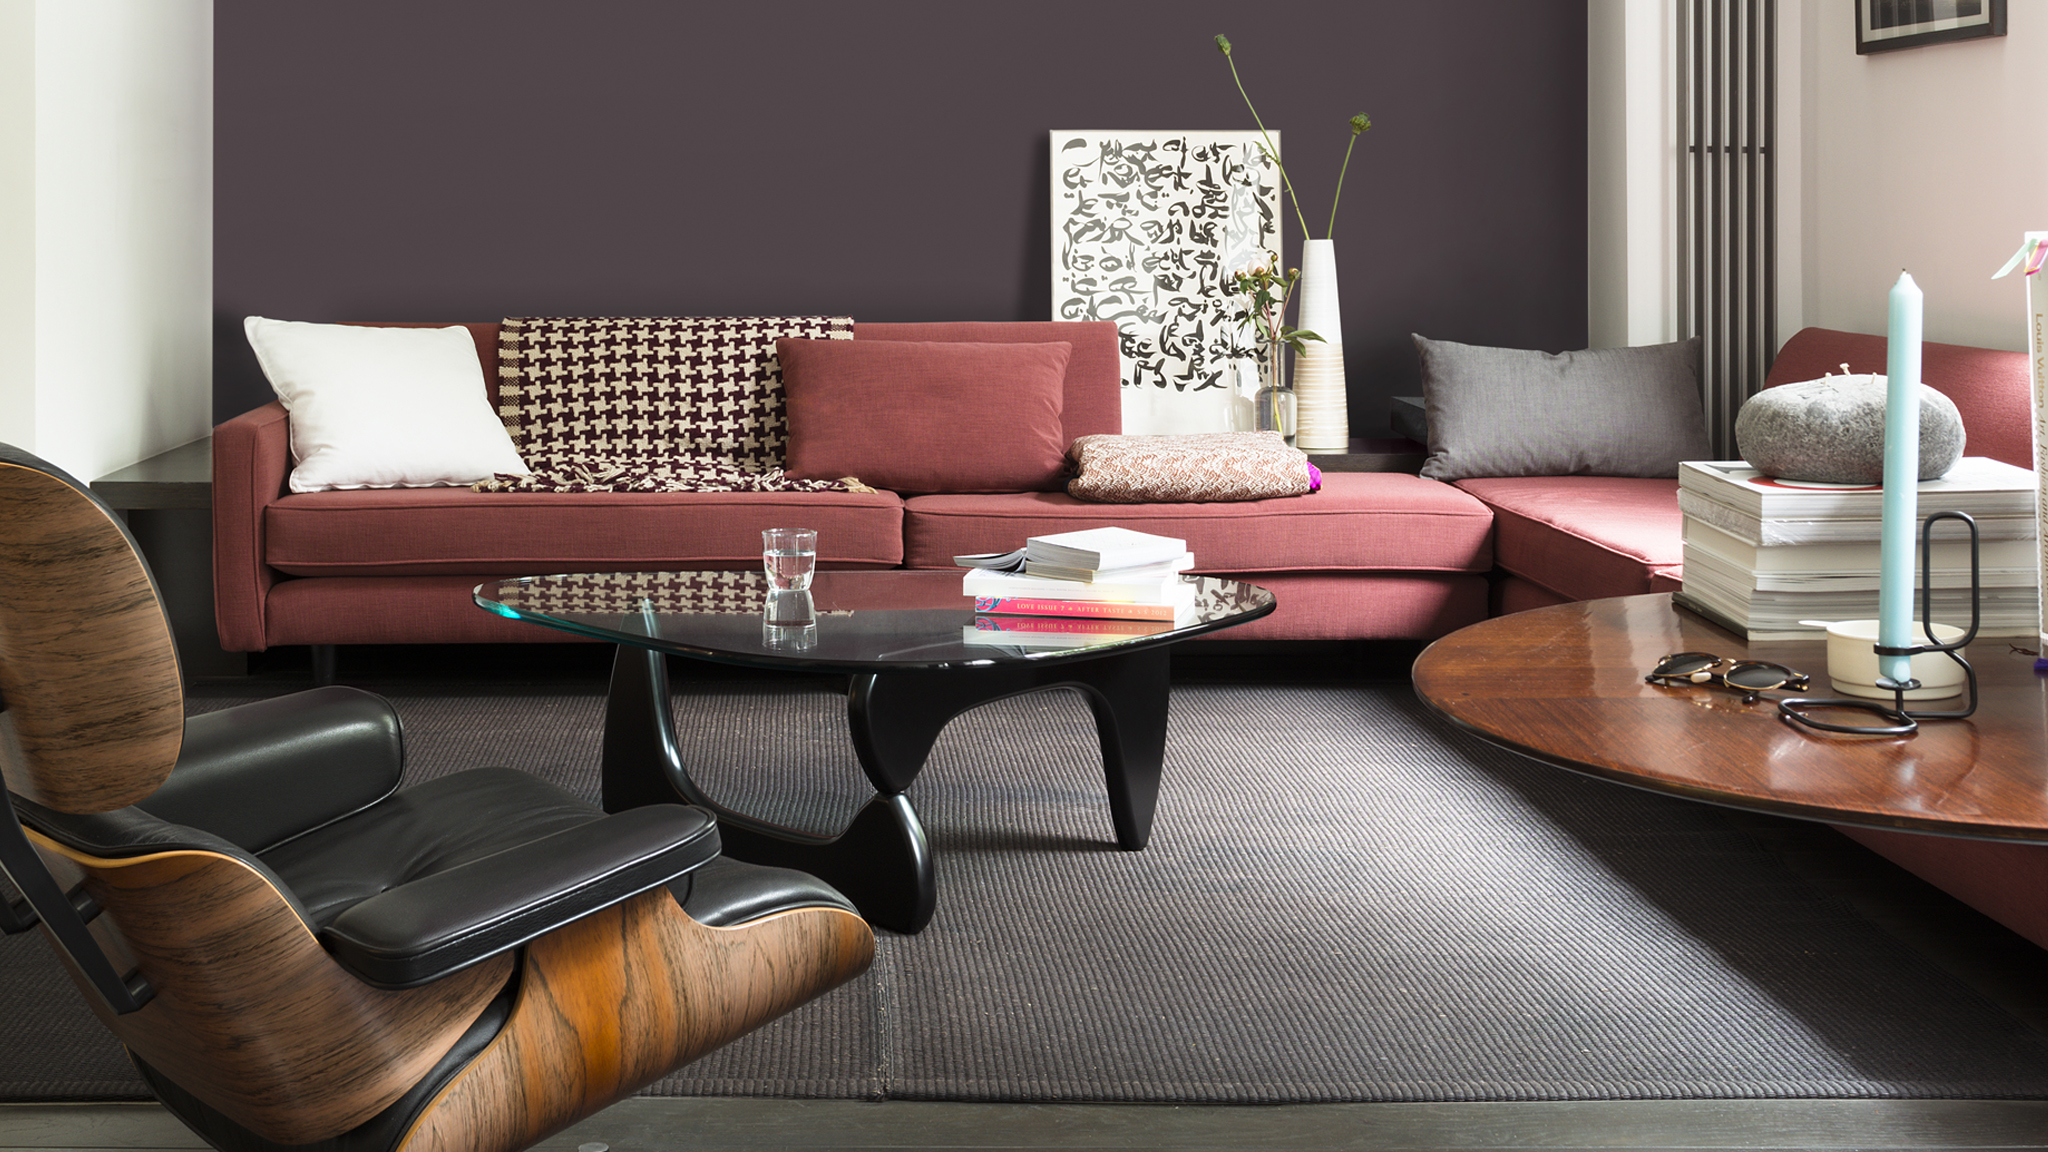 A deep, chocolatey shade of red will deliver plenty of drama to your new home